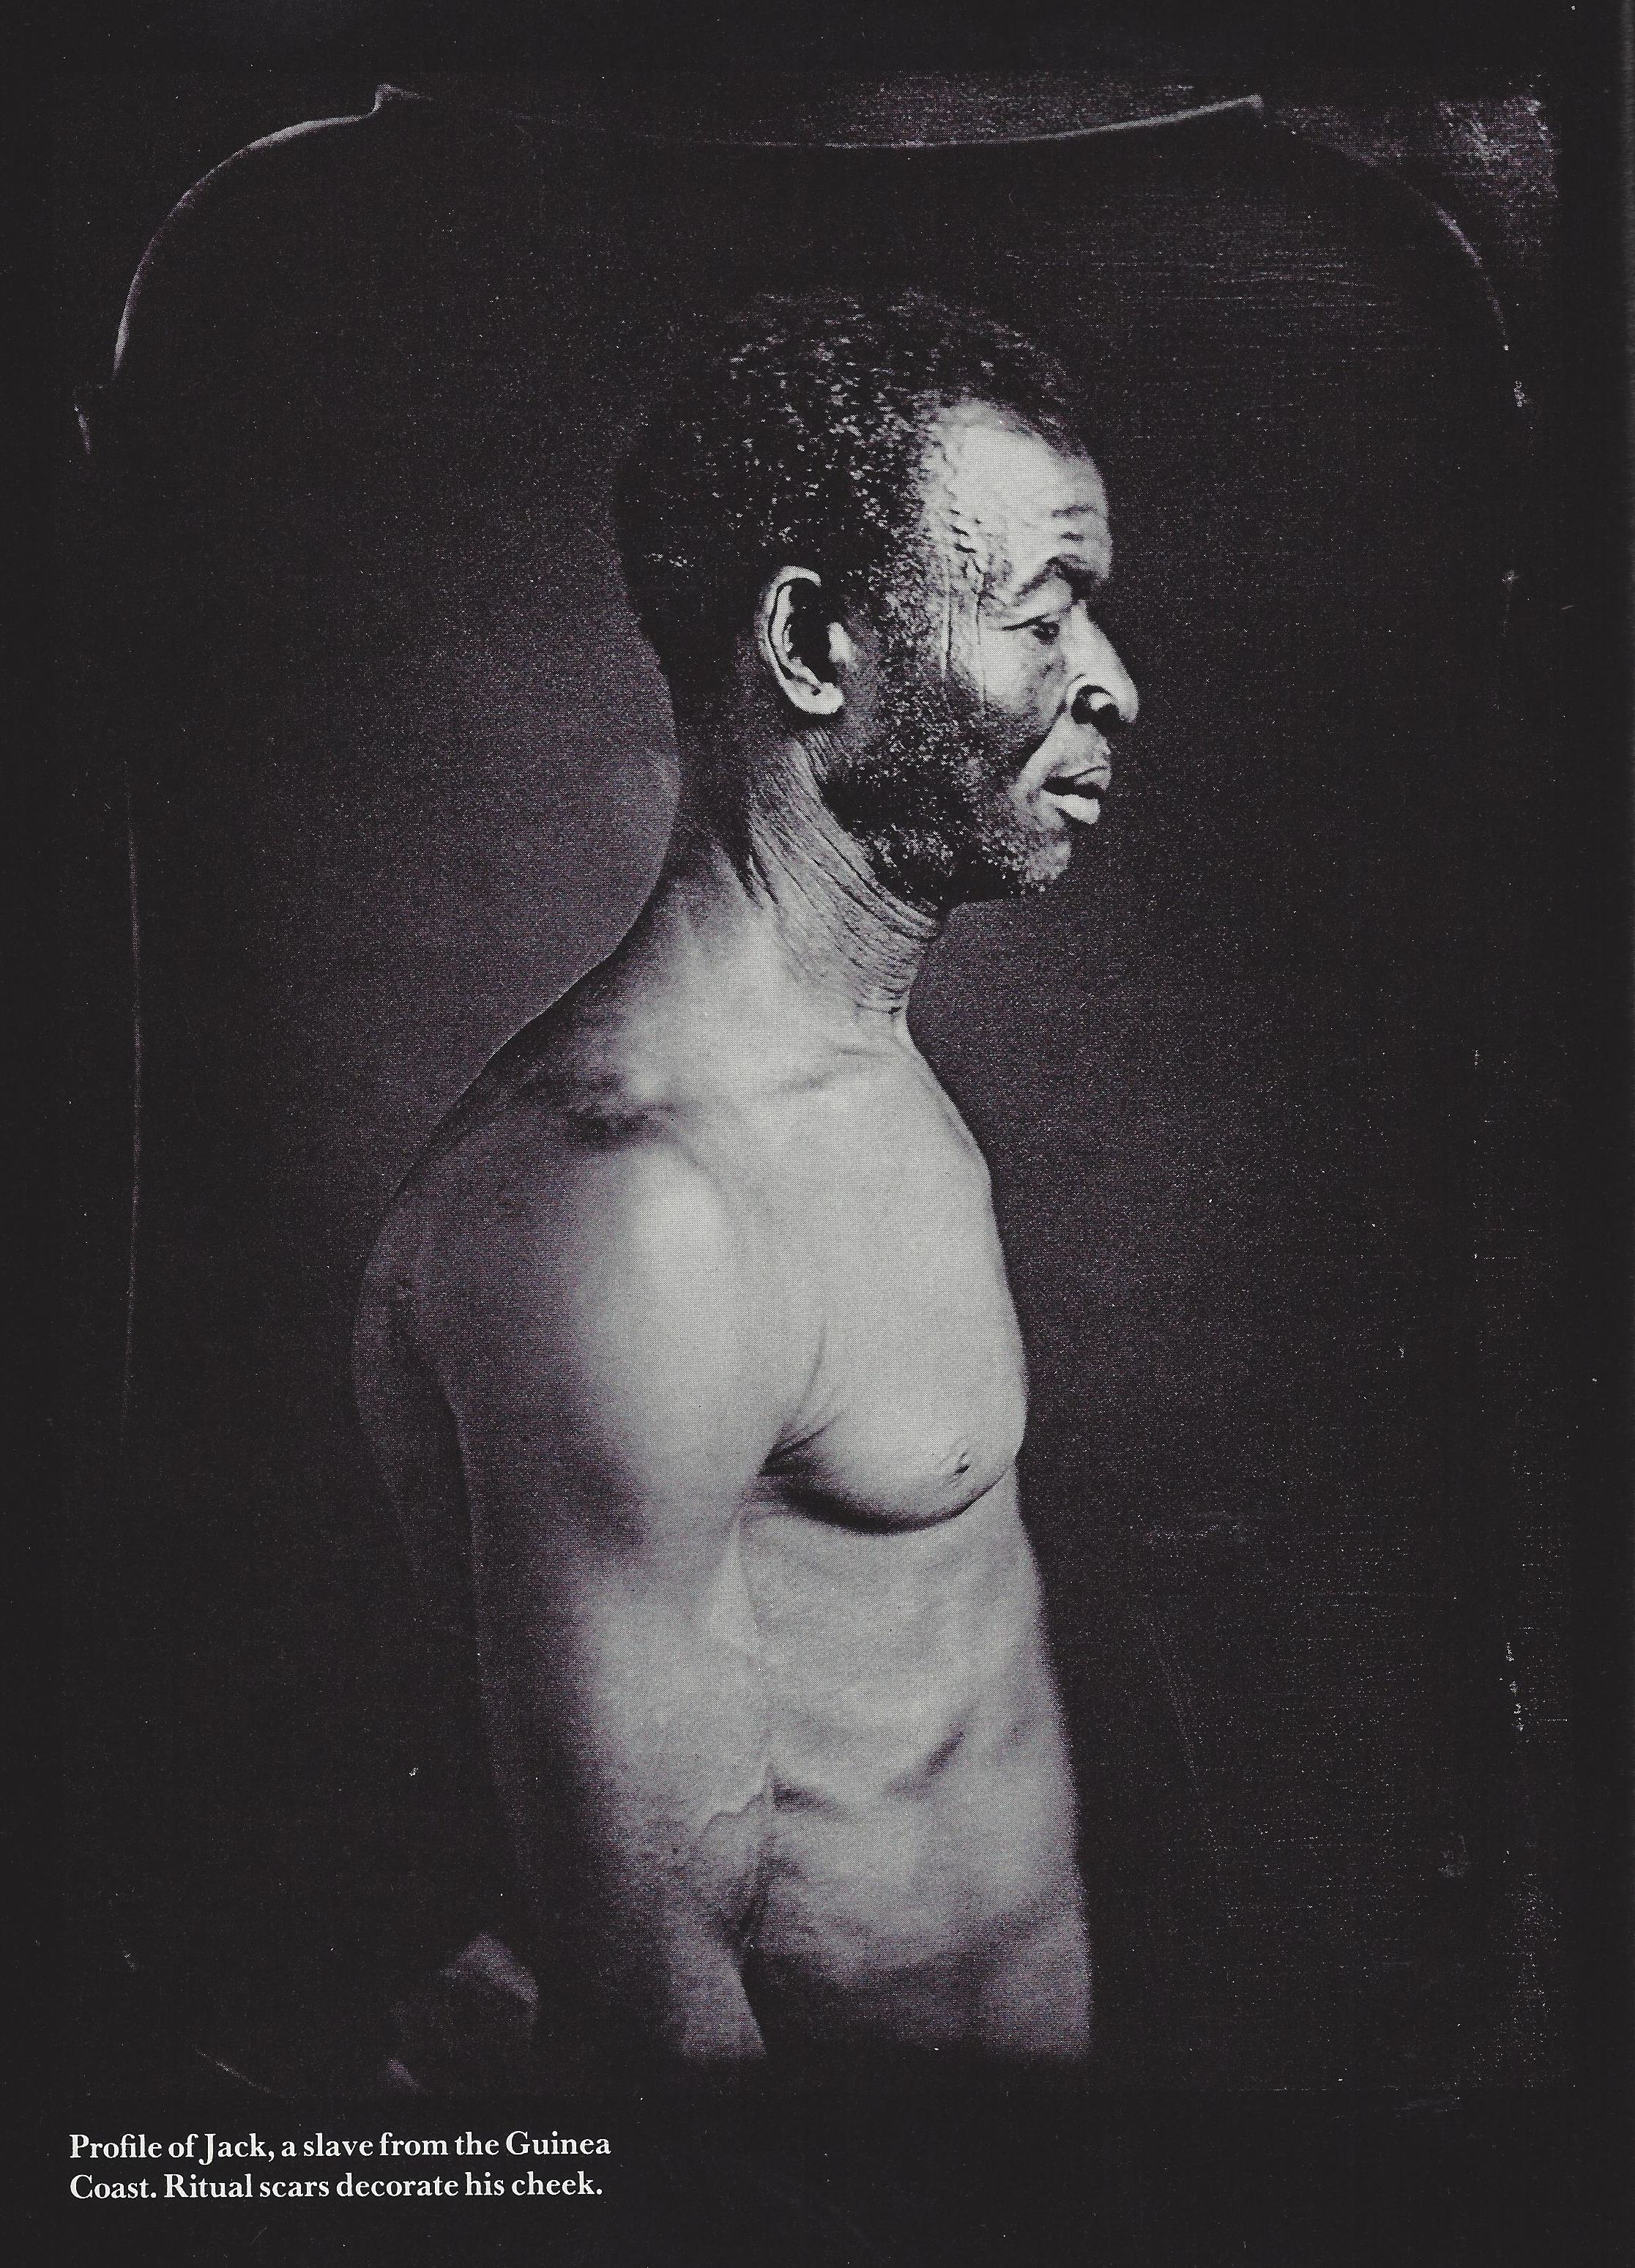 A profile of Jack, a slave from the Guinea Coast.